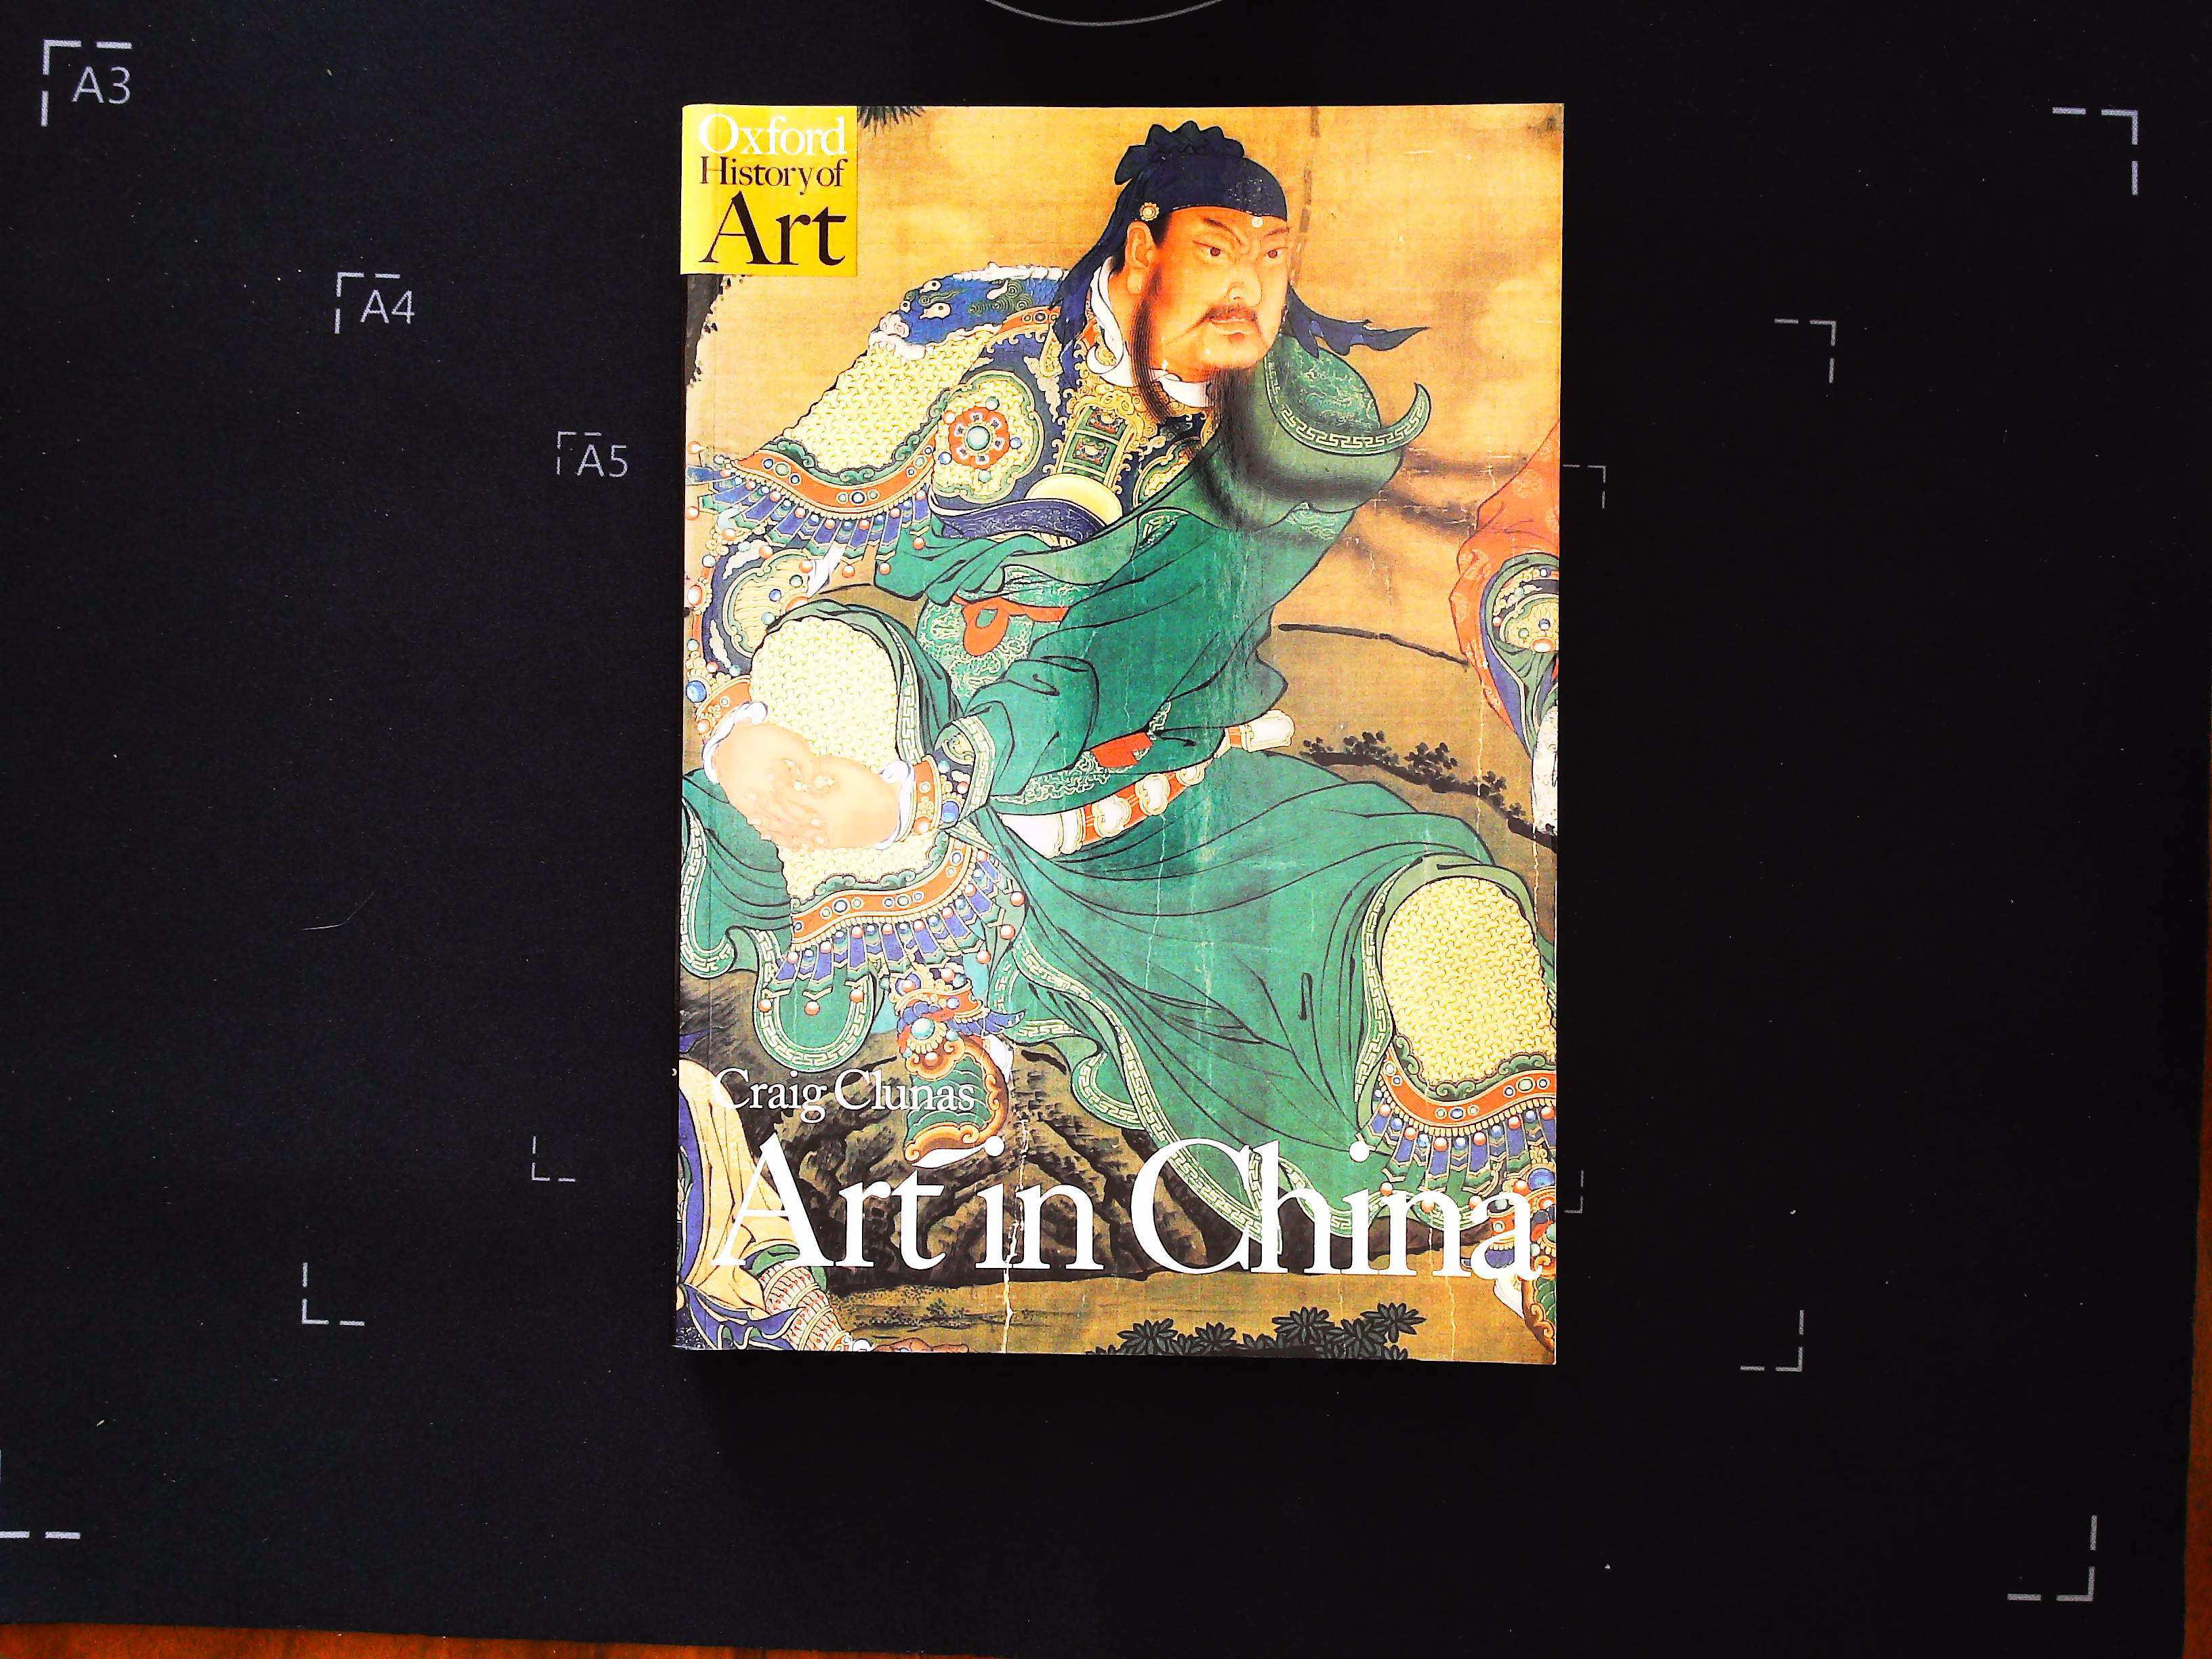 Art In China by Craig Clunas softback book 255 pages Published 1997 Oxford University Press. In good